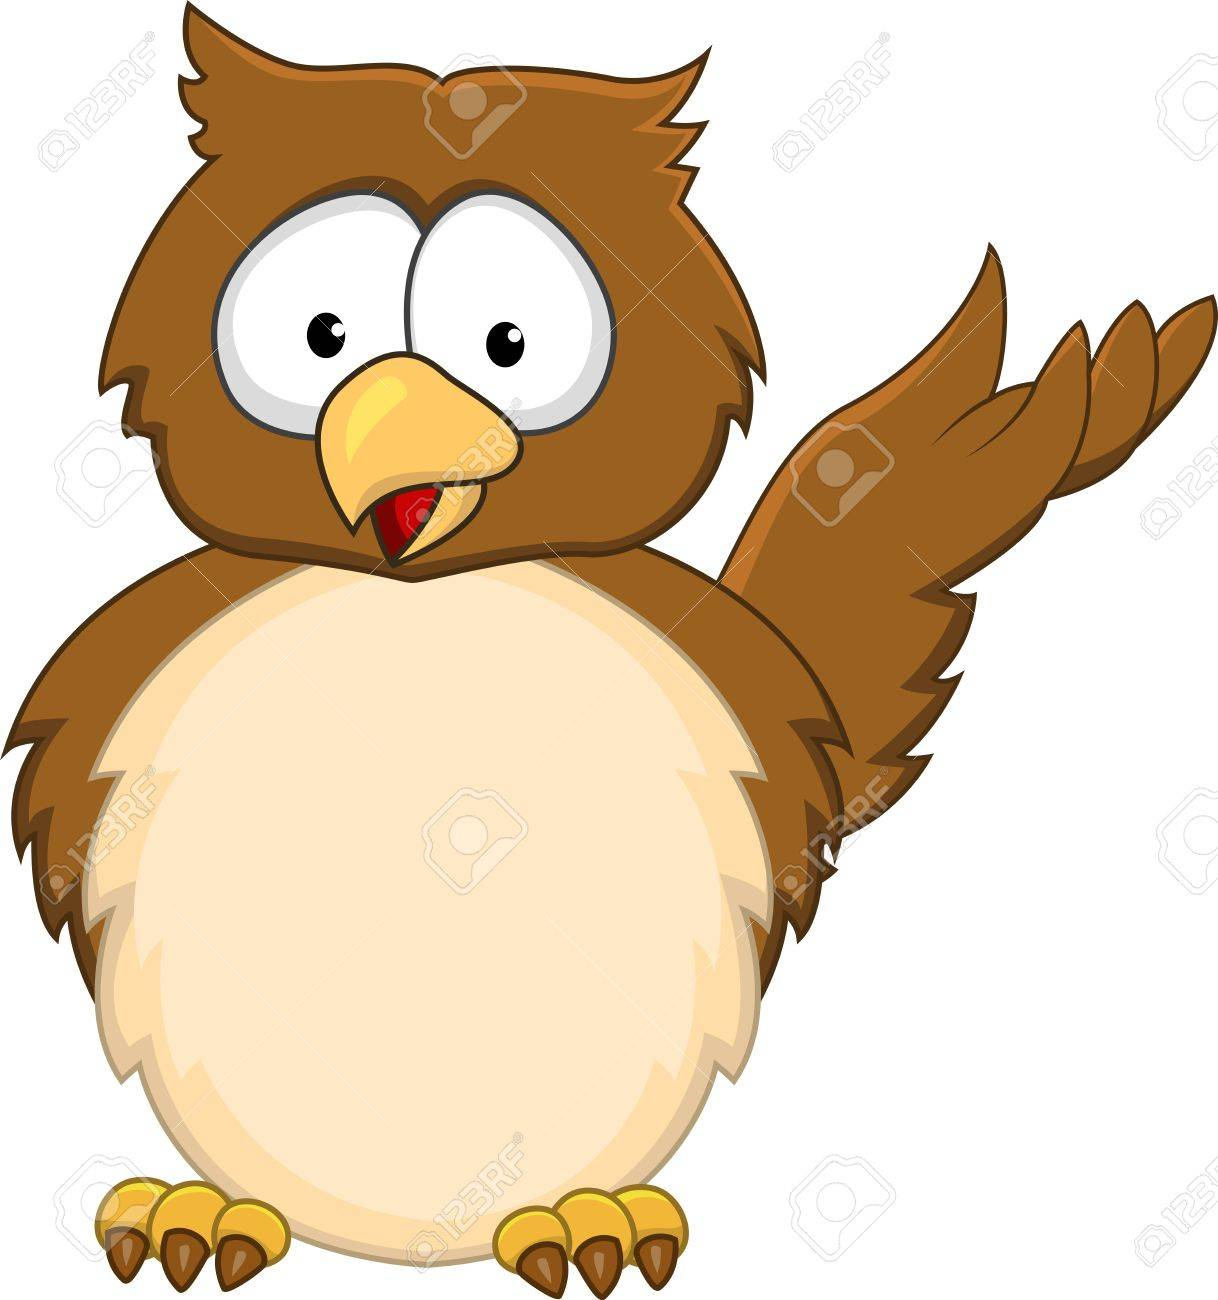 1218x1300 Funny Owl Cartoon Royalty Free Cliparts, Vectors, And Stock